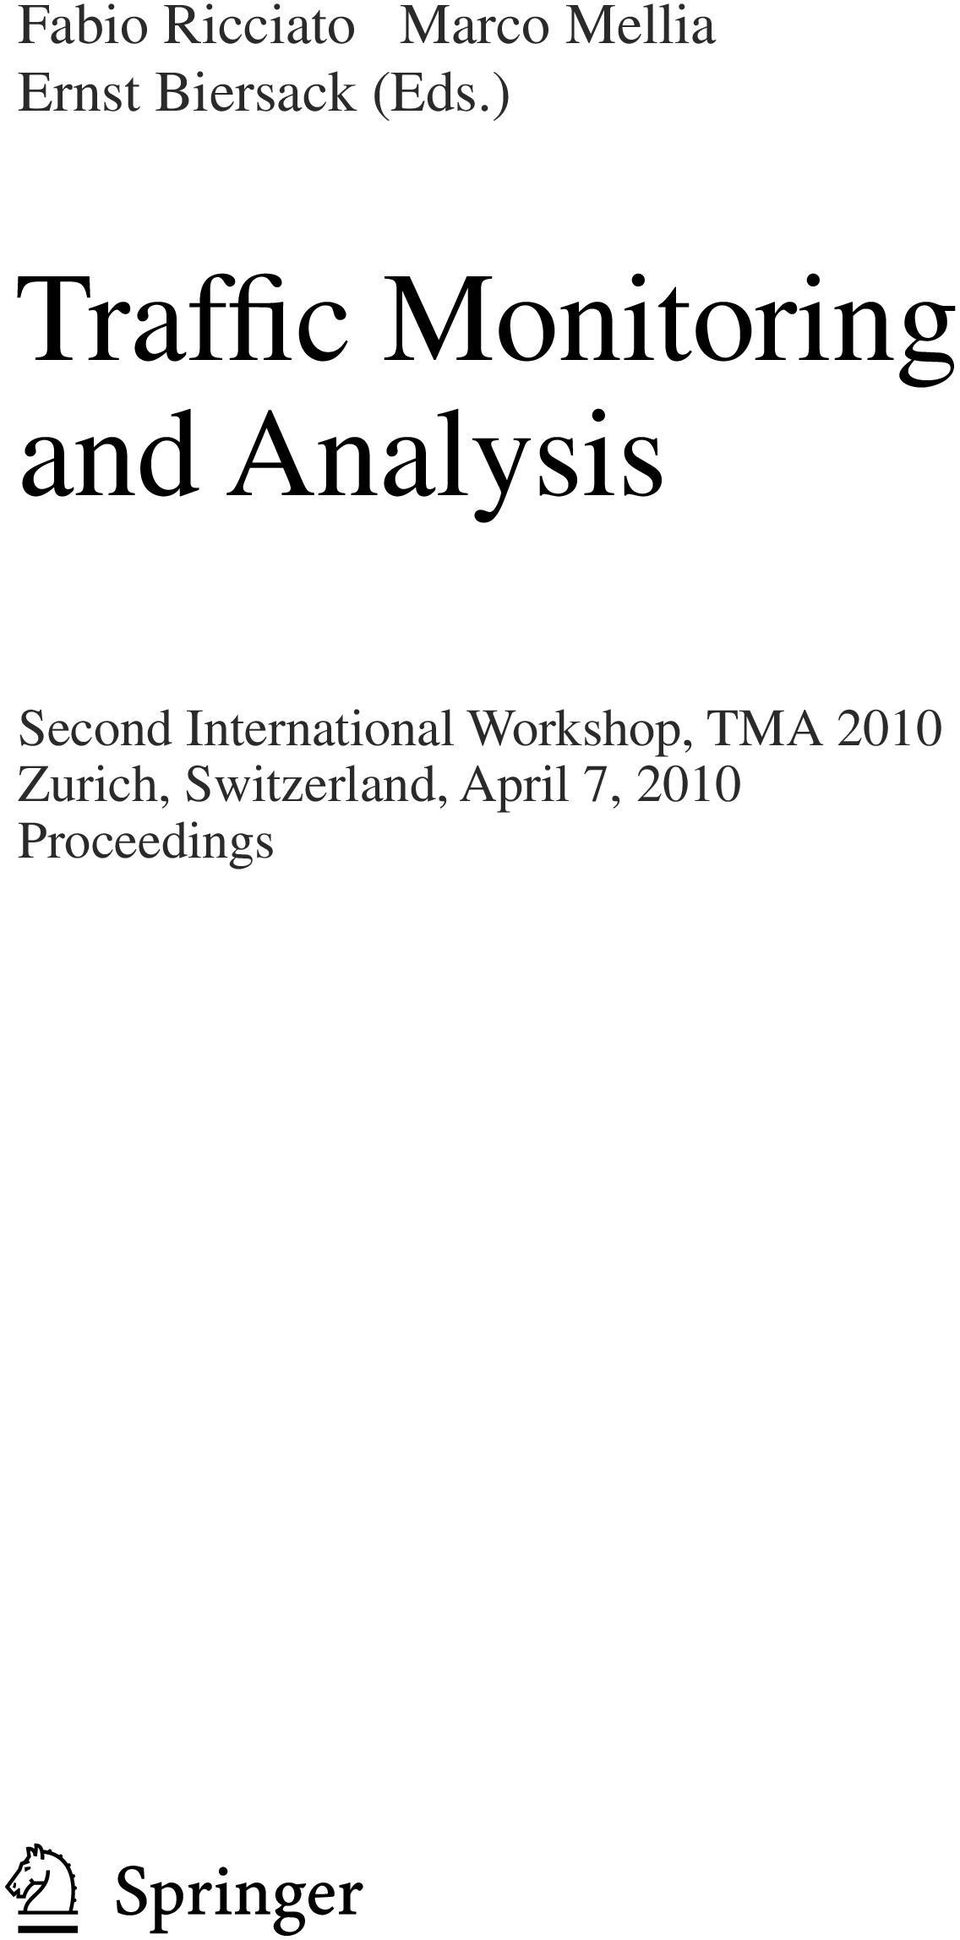 Second International Workshop, TMA 2010